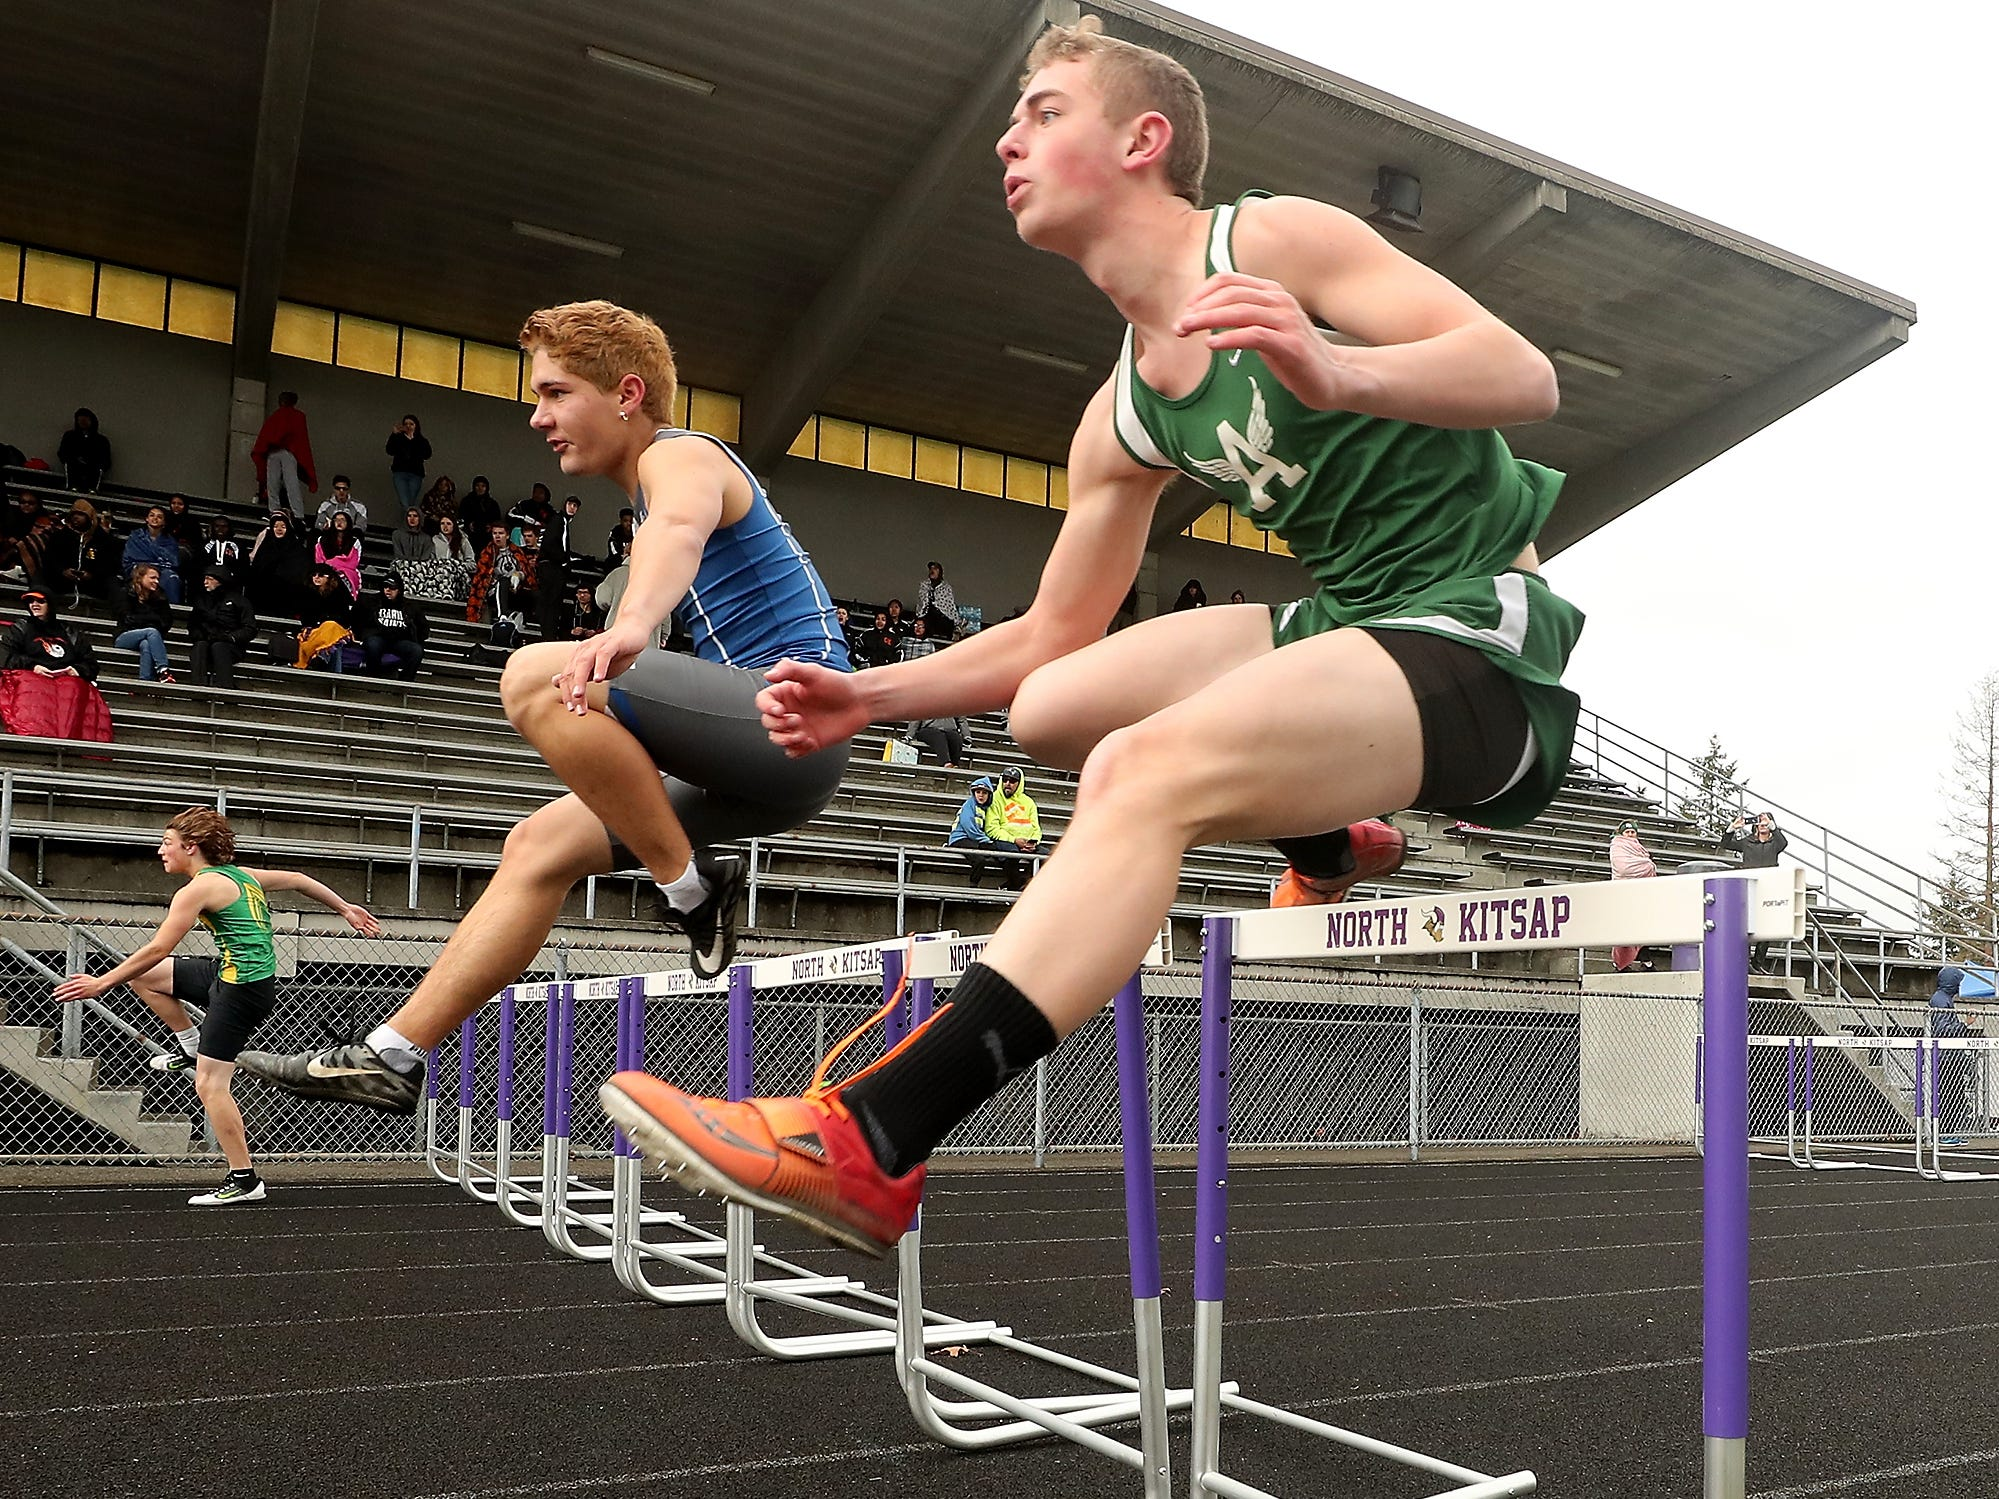 Olympic's Zachary Wyant and Port Angeles's Caleb Flodstrom (right) clear a set of hurdles during the Lil' Norway Invitational at North Kitsap High School in Poulsbo on Saturday, April13, 2019.